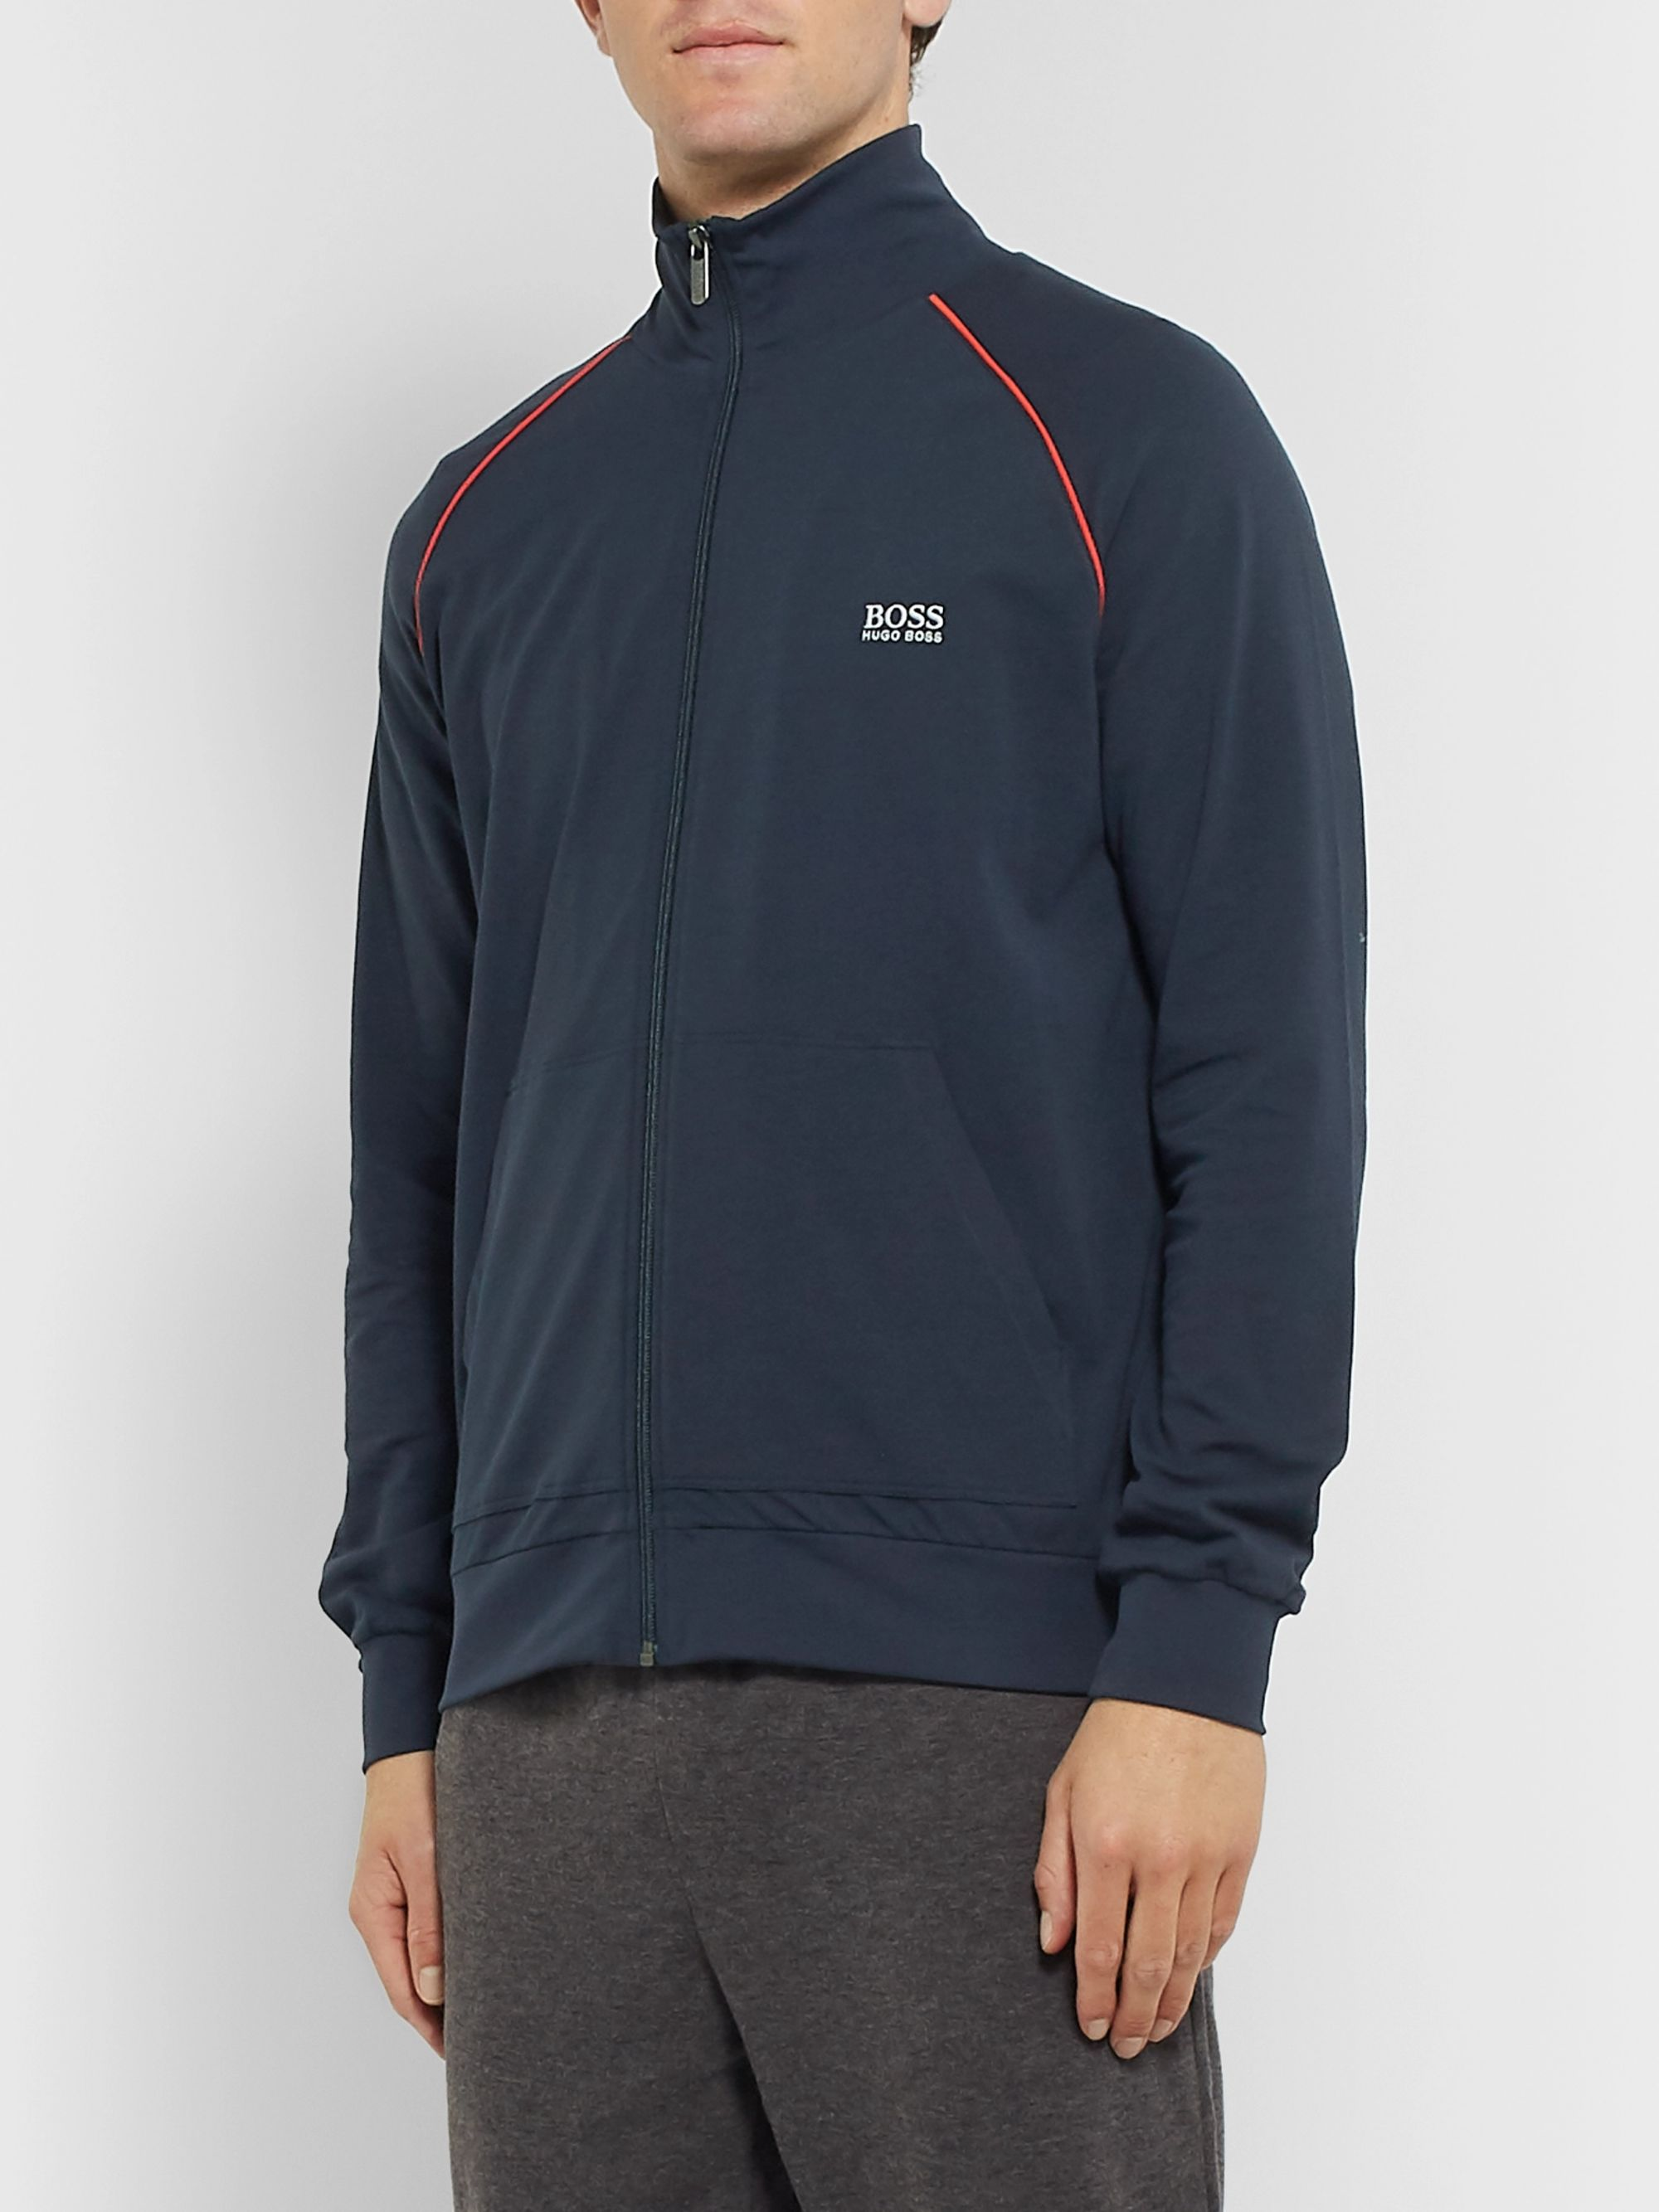 Hugo Boss Cotton-Blend Jersey Track Jacket